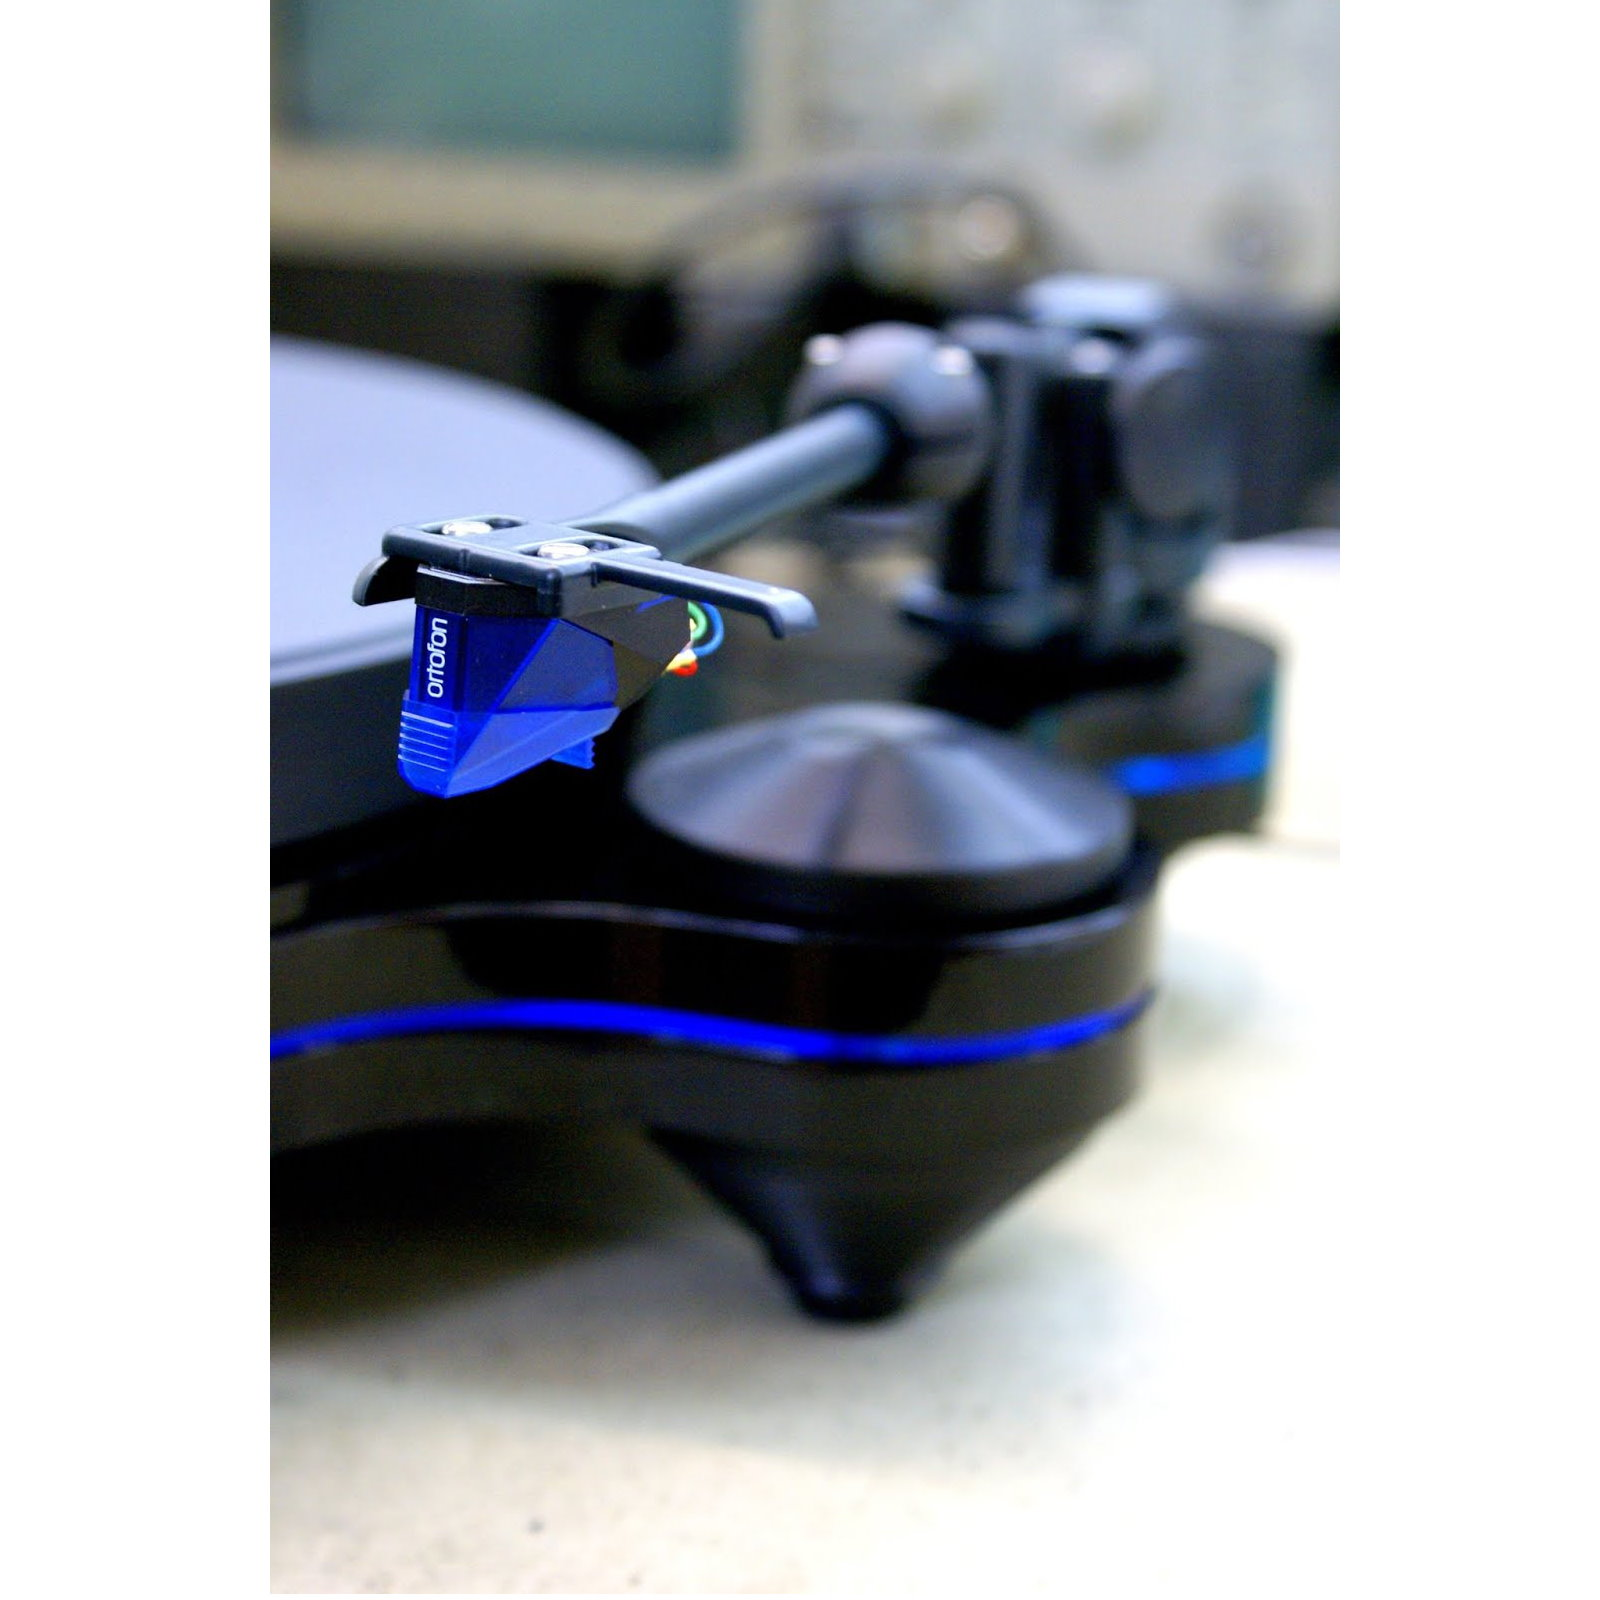 Oracle Origine CT Turntable with Ortofon Blue MM Cartridge